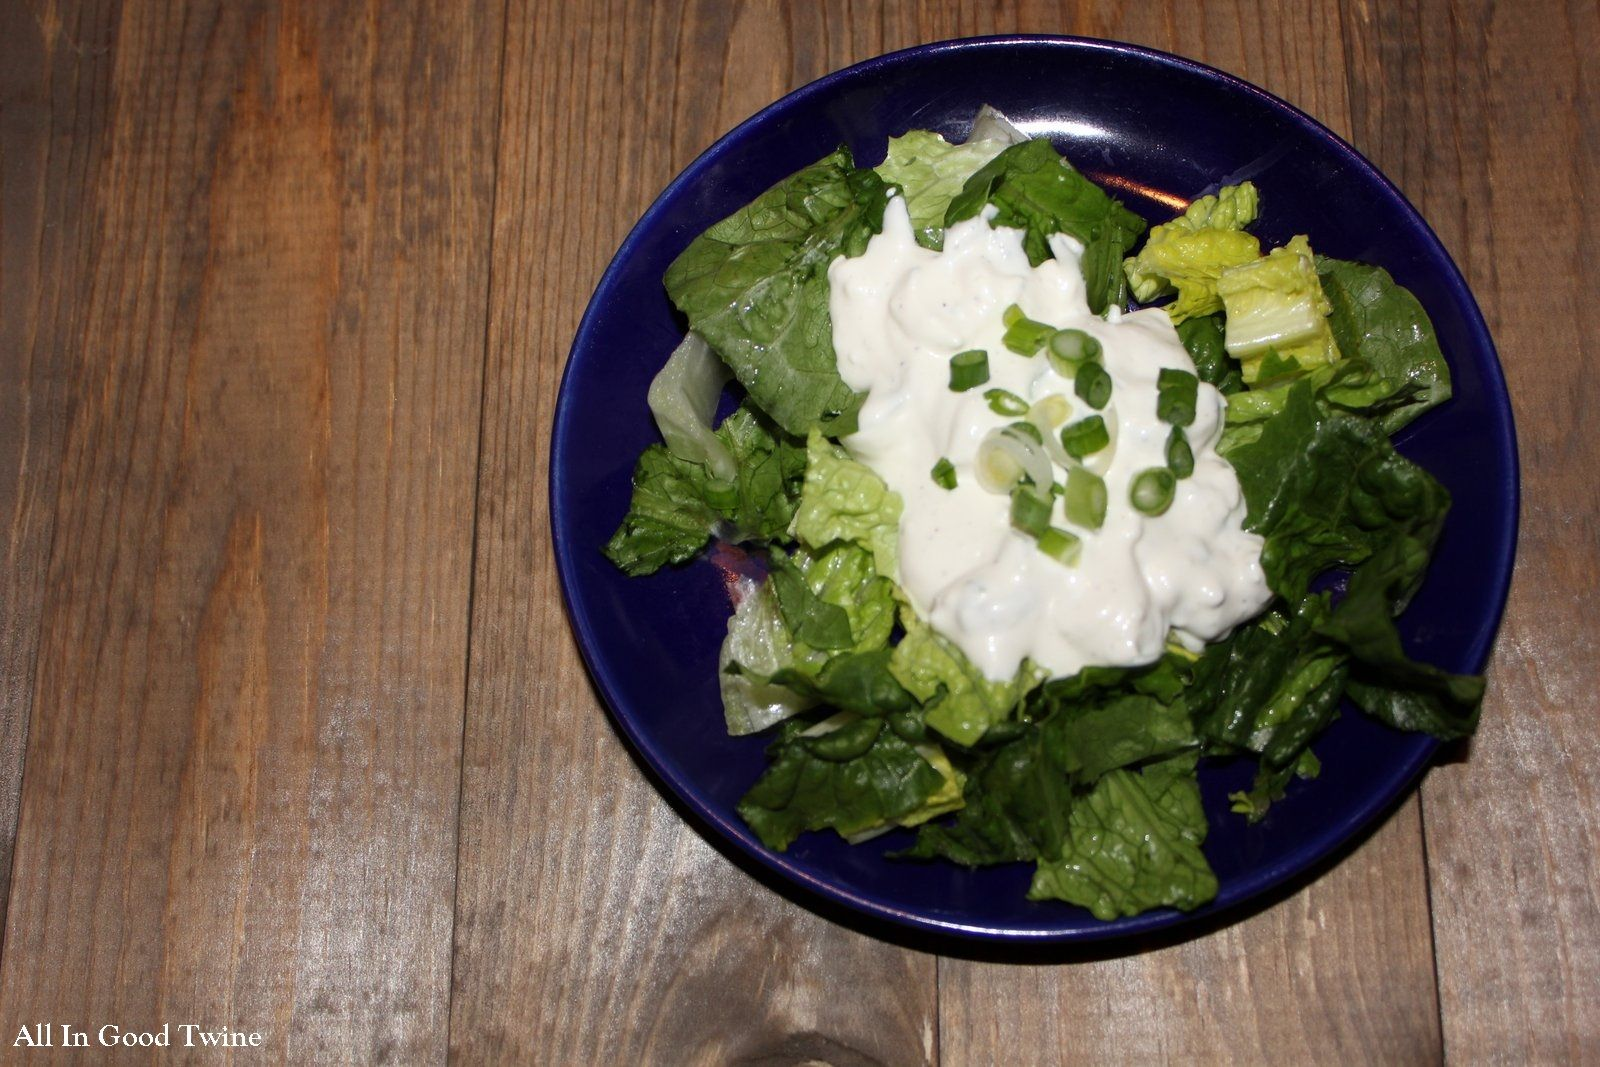 Blue cheese dressing bad for you